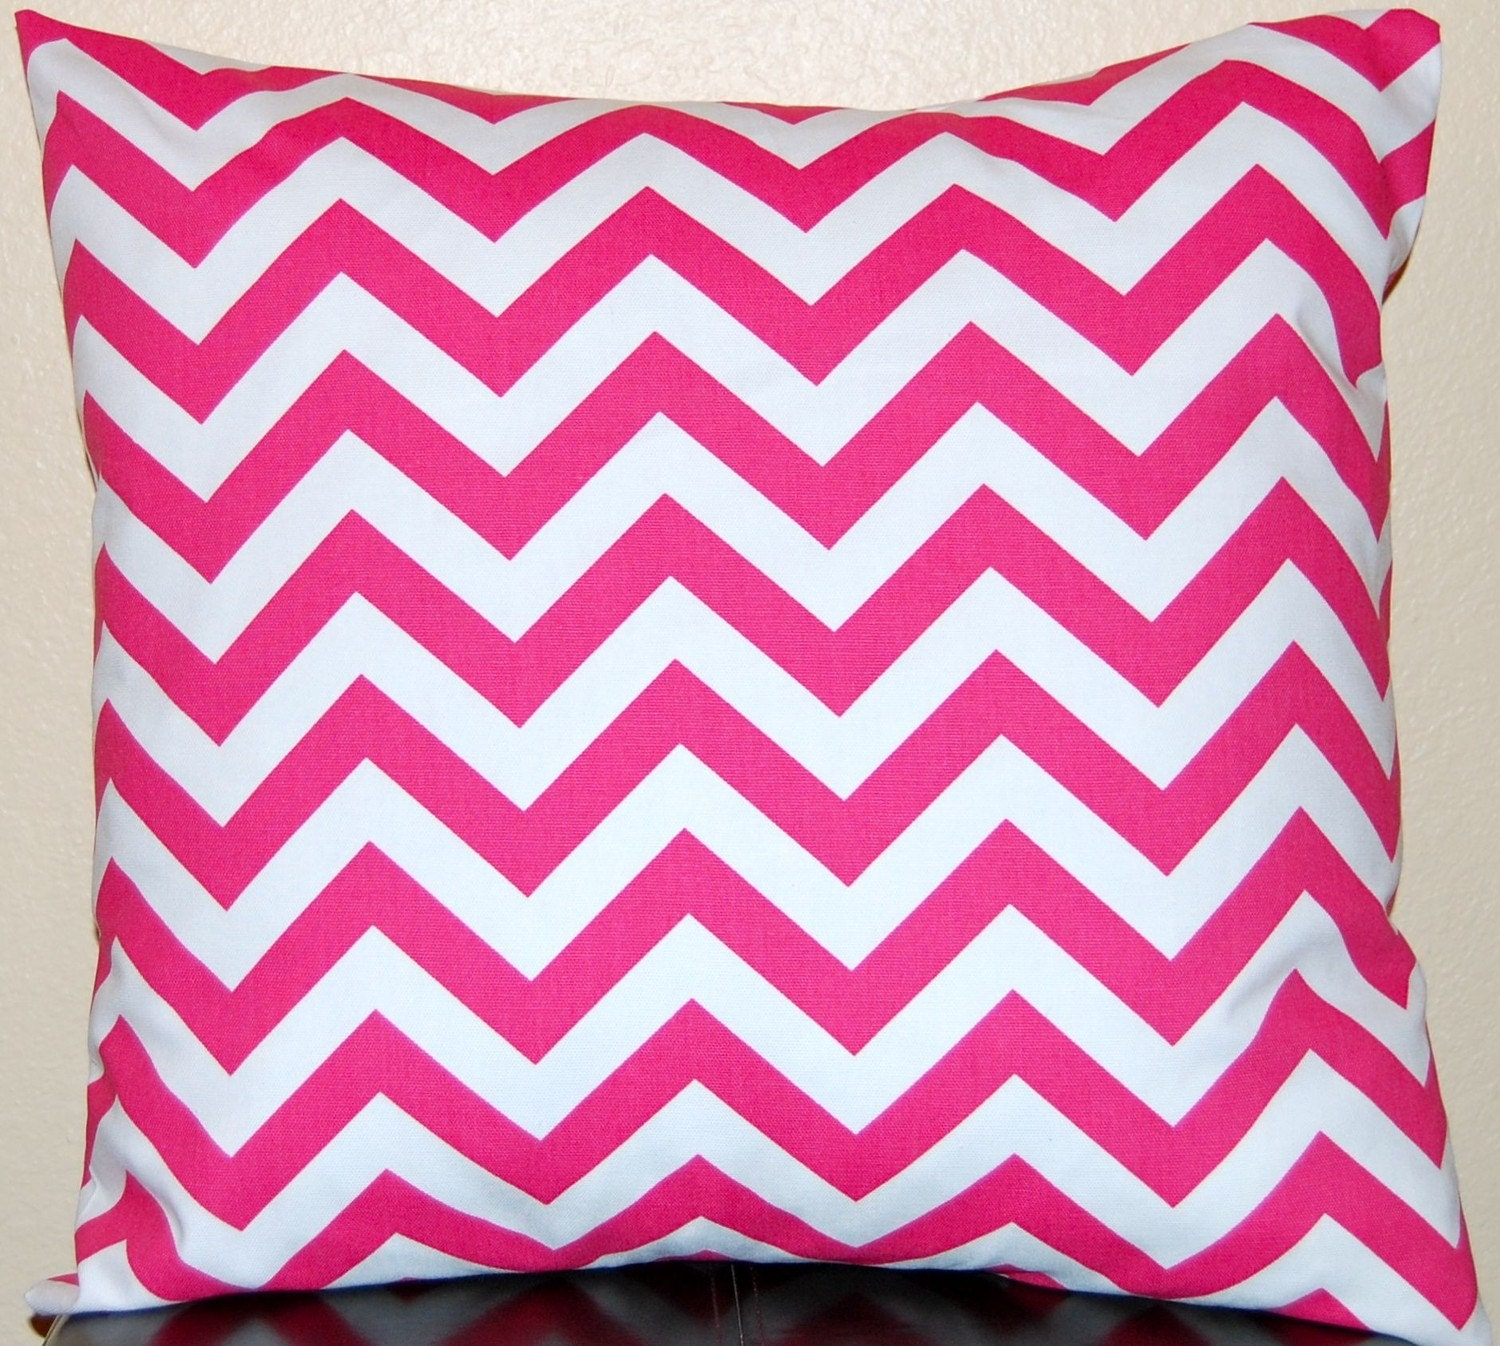 Pair of Decorative Toss Pillow Covers - Ready to Ship - 20 Inches - Gray on White Zig Zag Chevron